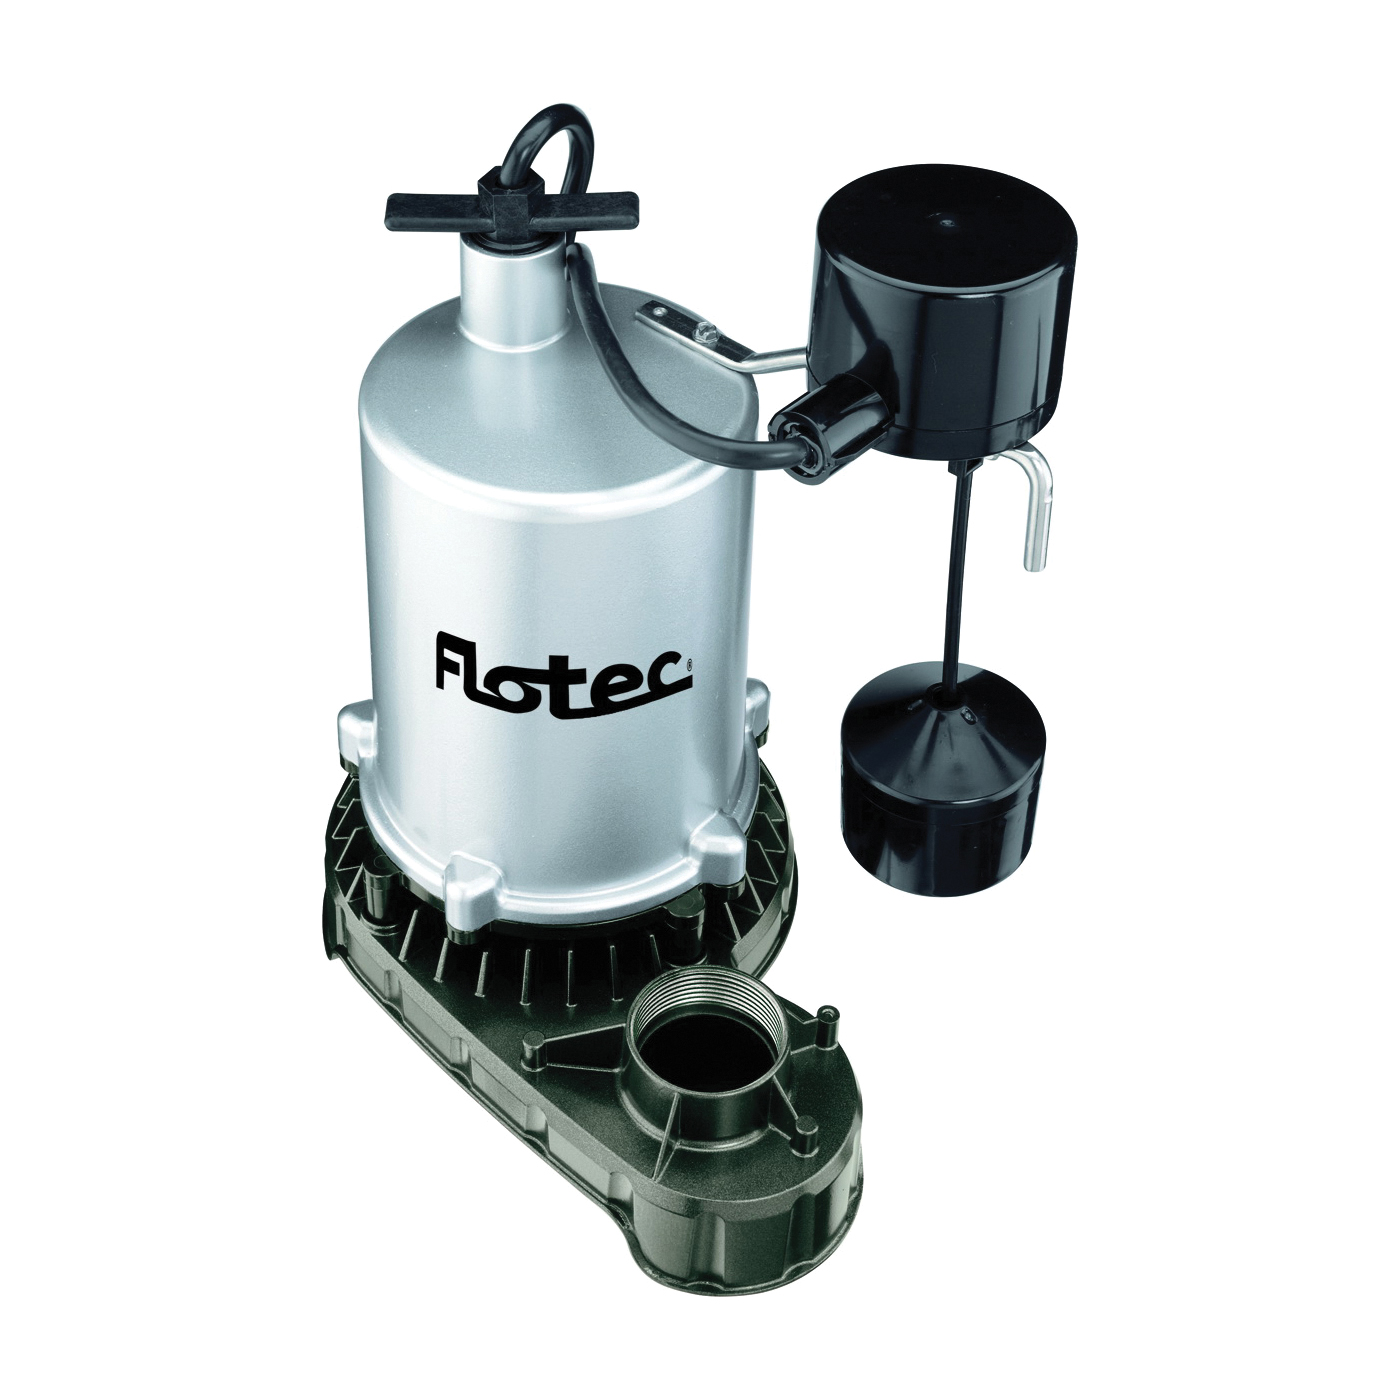 Picture of Flotec FPZT7550 Sump Pump, 7.9 A, 115 V, 1 hp, 1-1/2 in Outlet, 29 ft Max Head, 4980 gph, Zinc